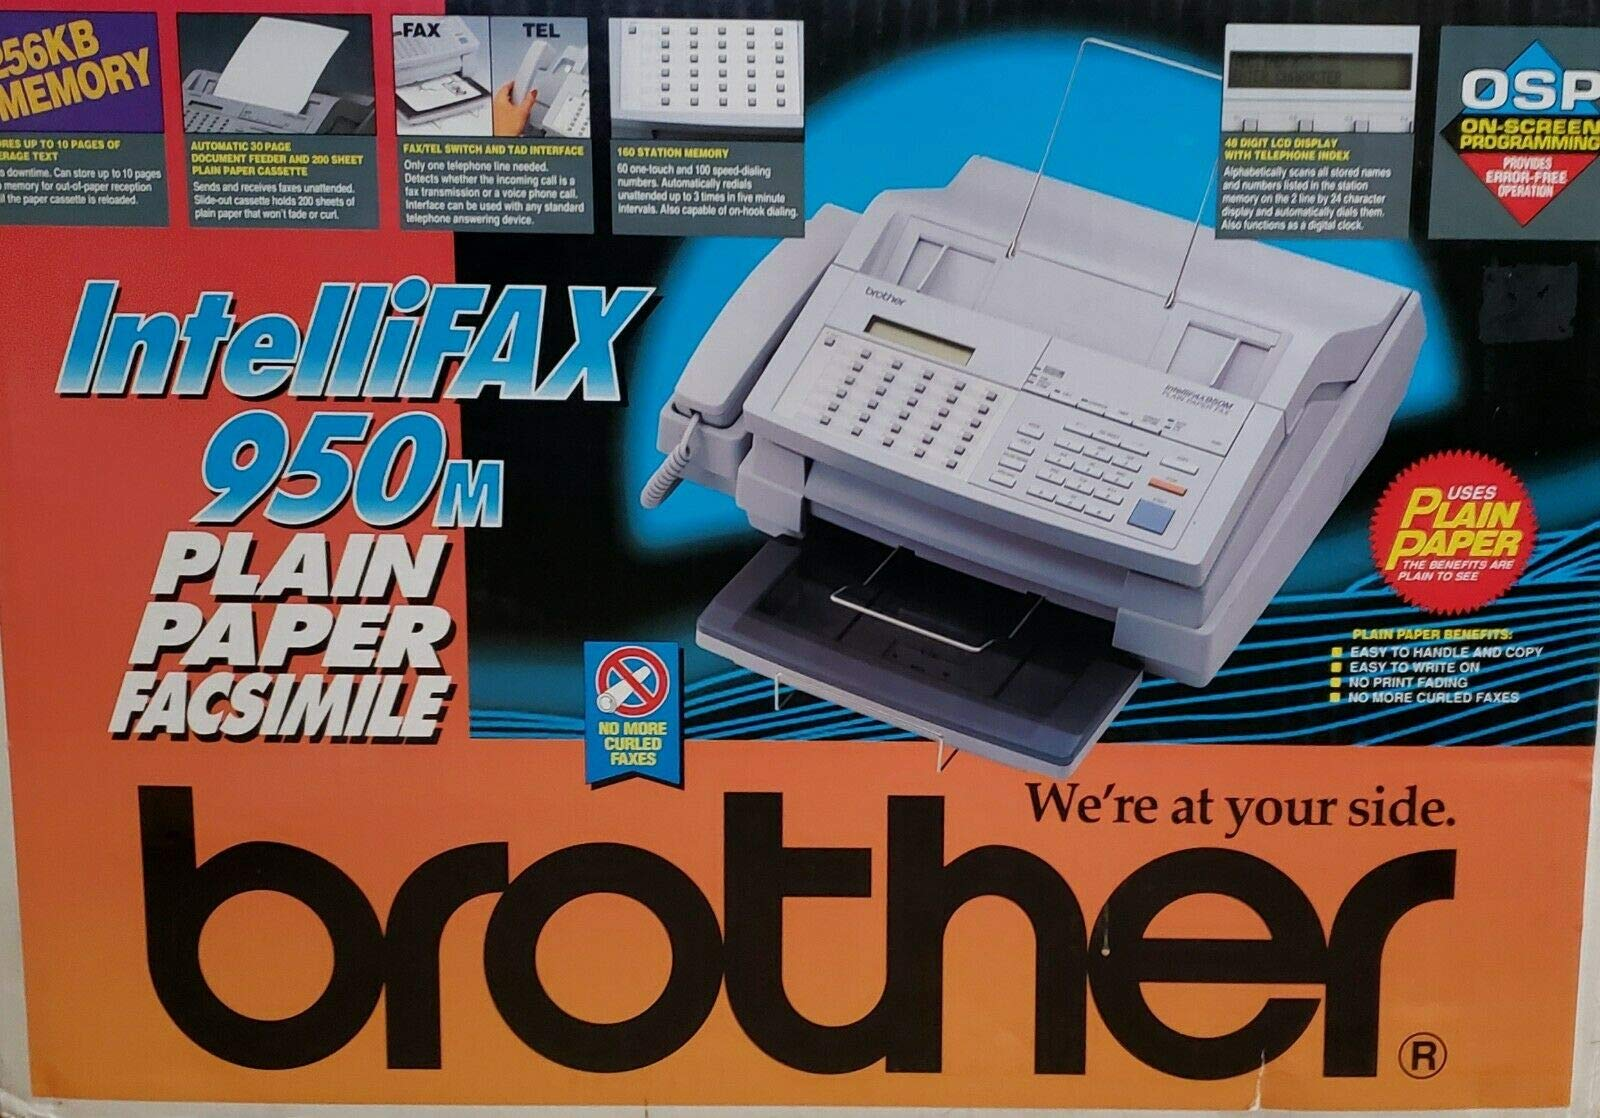 Brotheer IntelliFax 950M Plain Paper Facsimile Fax Machine